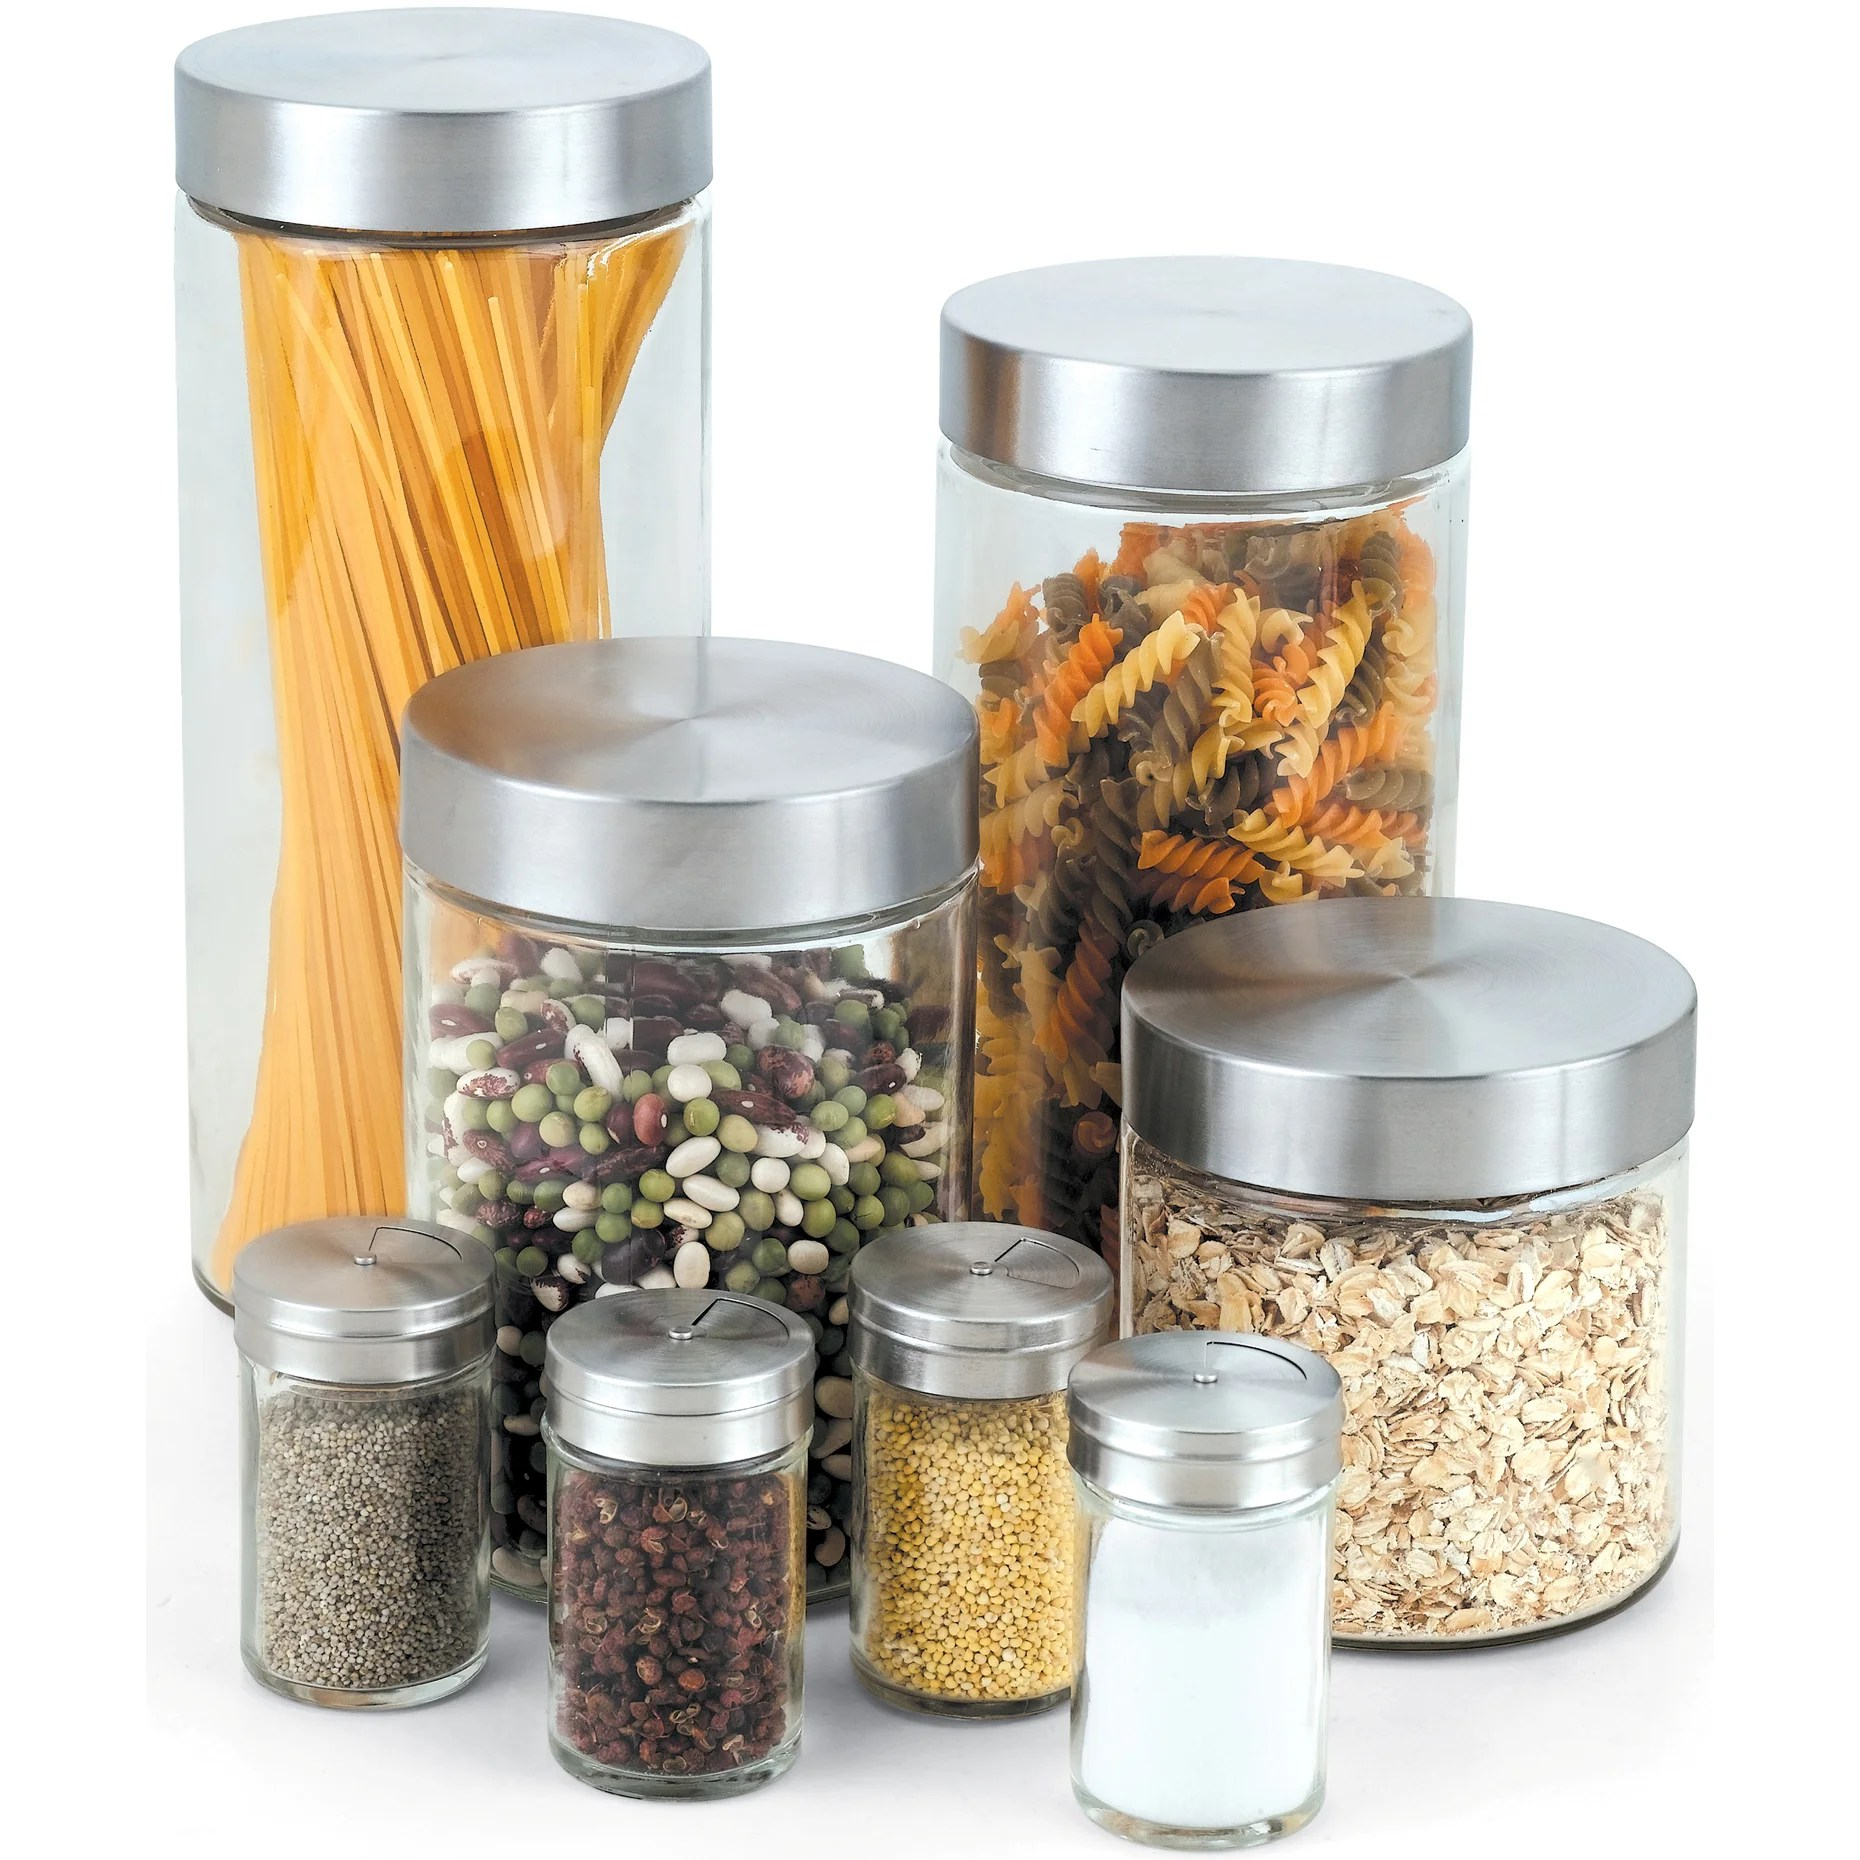 cook n home 8 piece glass canister and spice jar set with lids free shipping on orders over 45 overstock 14780700